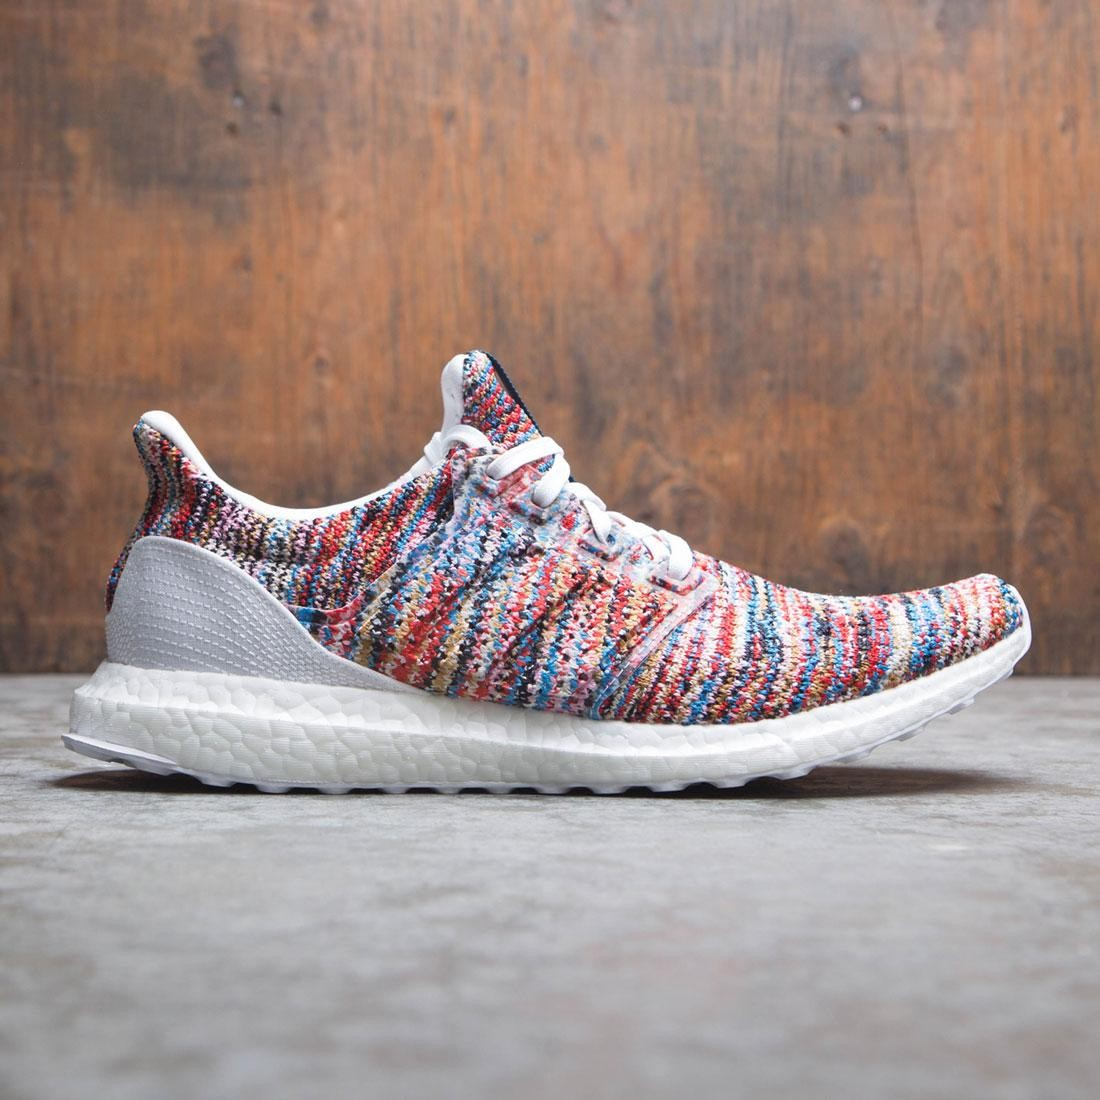 Adidas x Missoni Men UltraBOOST CLIMA (white / shock cyan / active red)